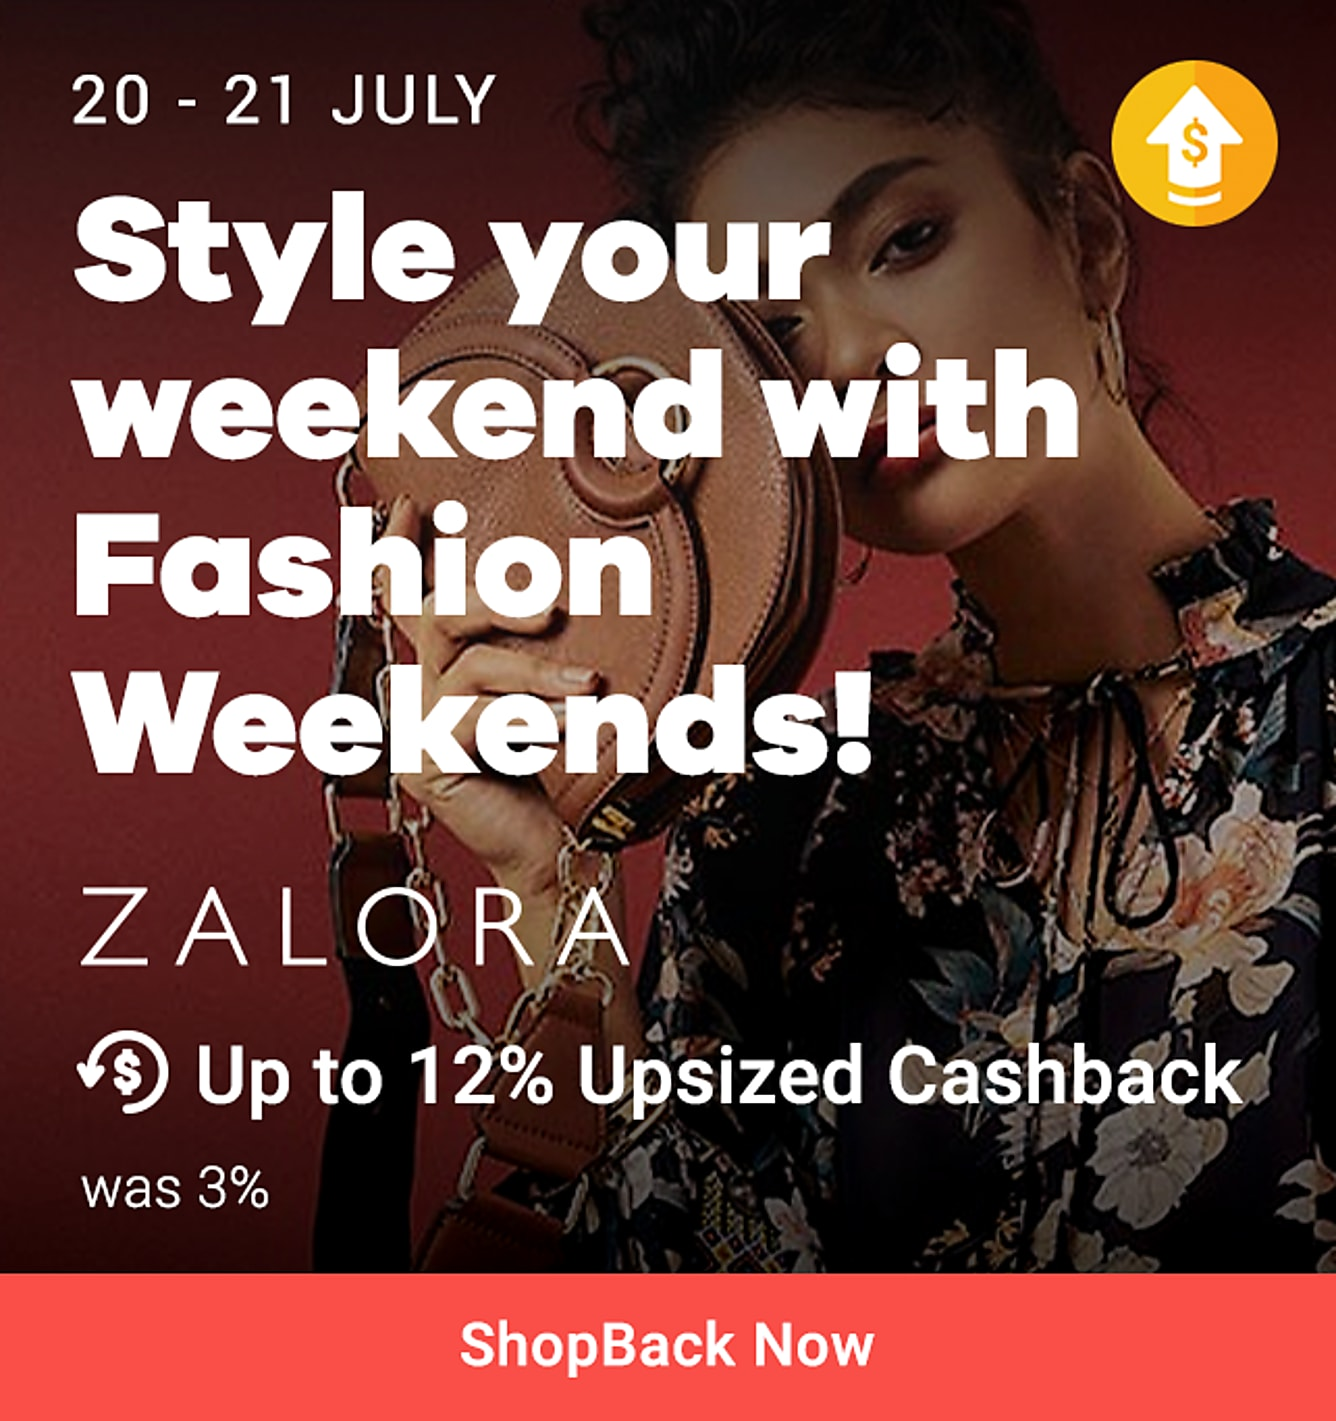 Zalora 20 - 21 Jul: Up to 12% upsized (was 3%) + onsite